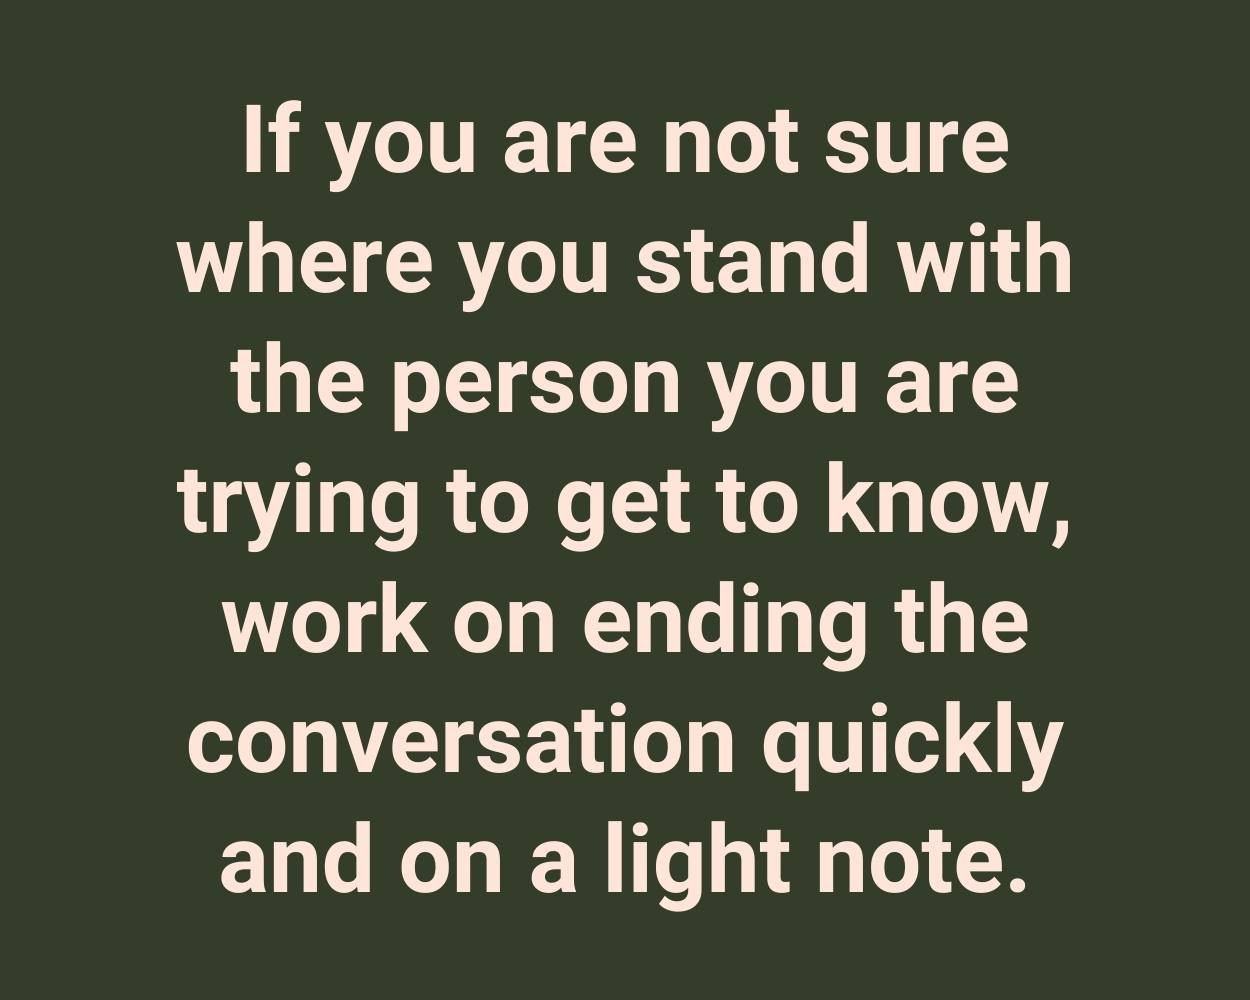 If you are not sure where you stand with the person you are trying to get to know, work on ending the conversation quickly and on a light note.